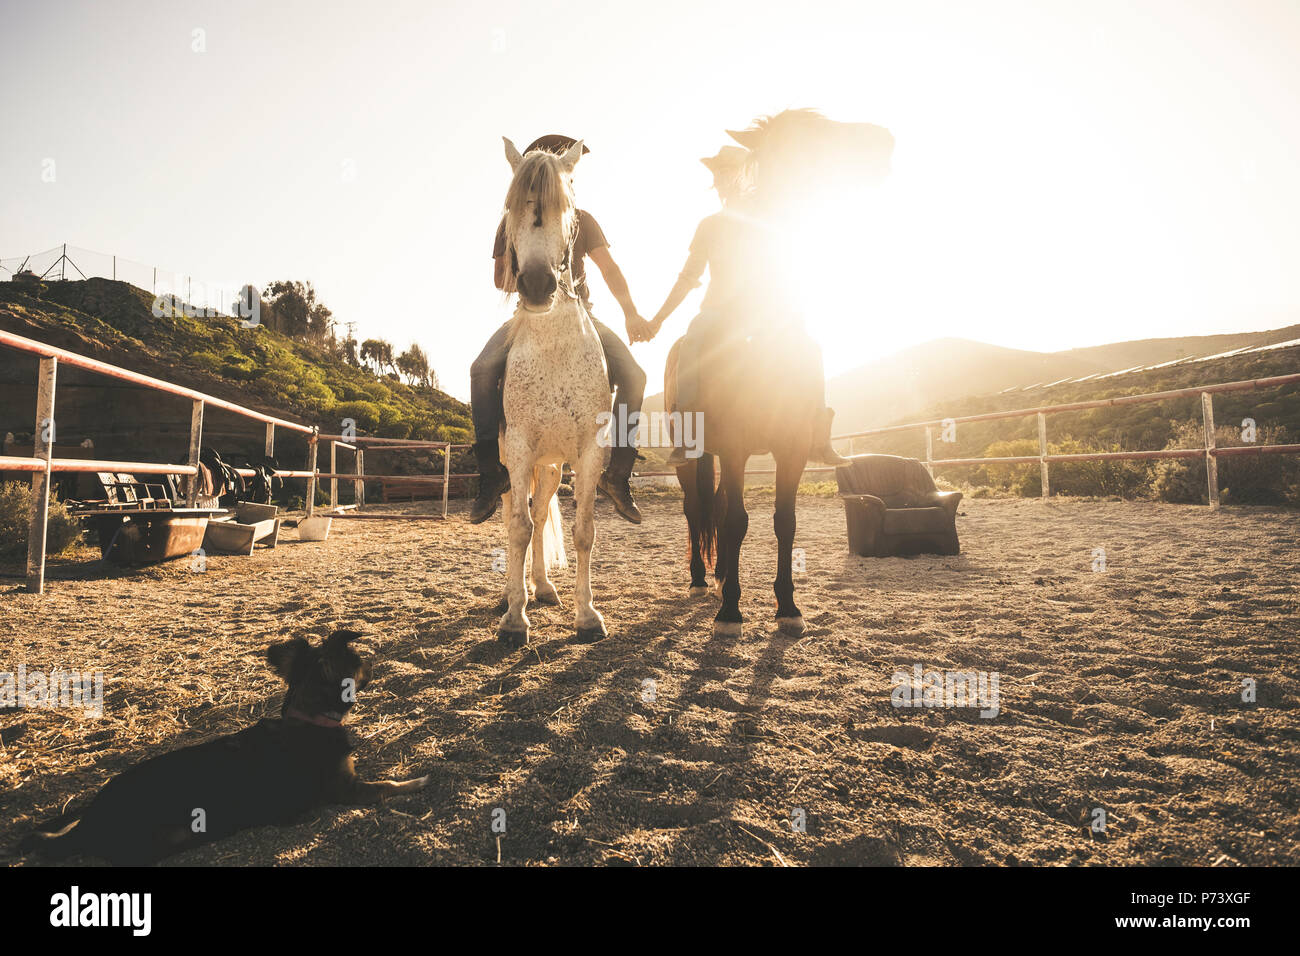 horse riding scenic picture with two animal and people couple and a dog taking hands with love and friendship and sunset sunlight in the background. w - Stock Image